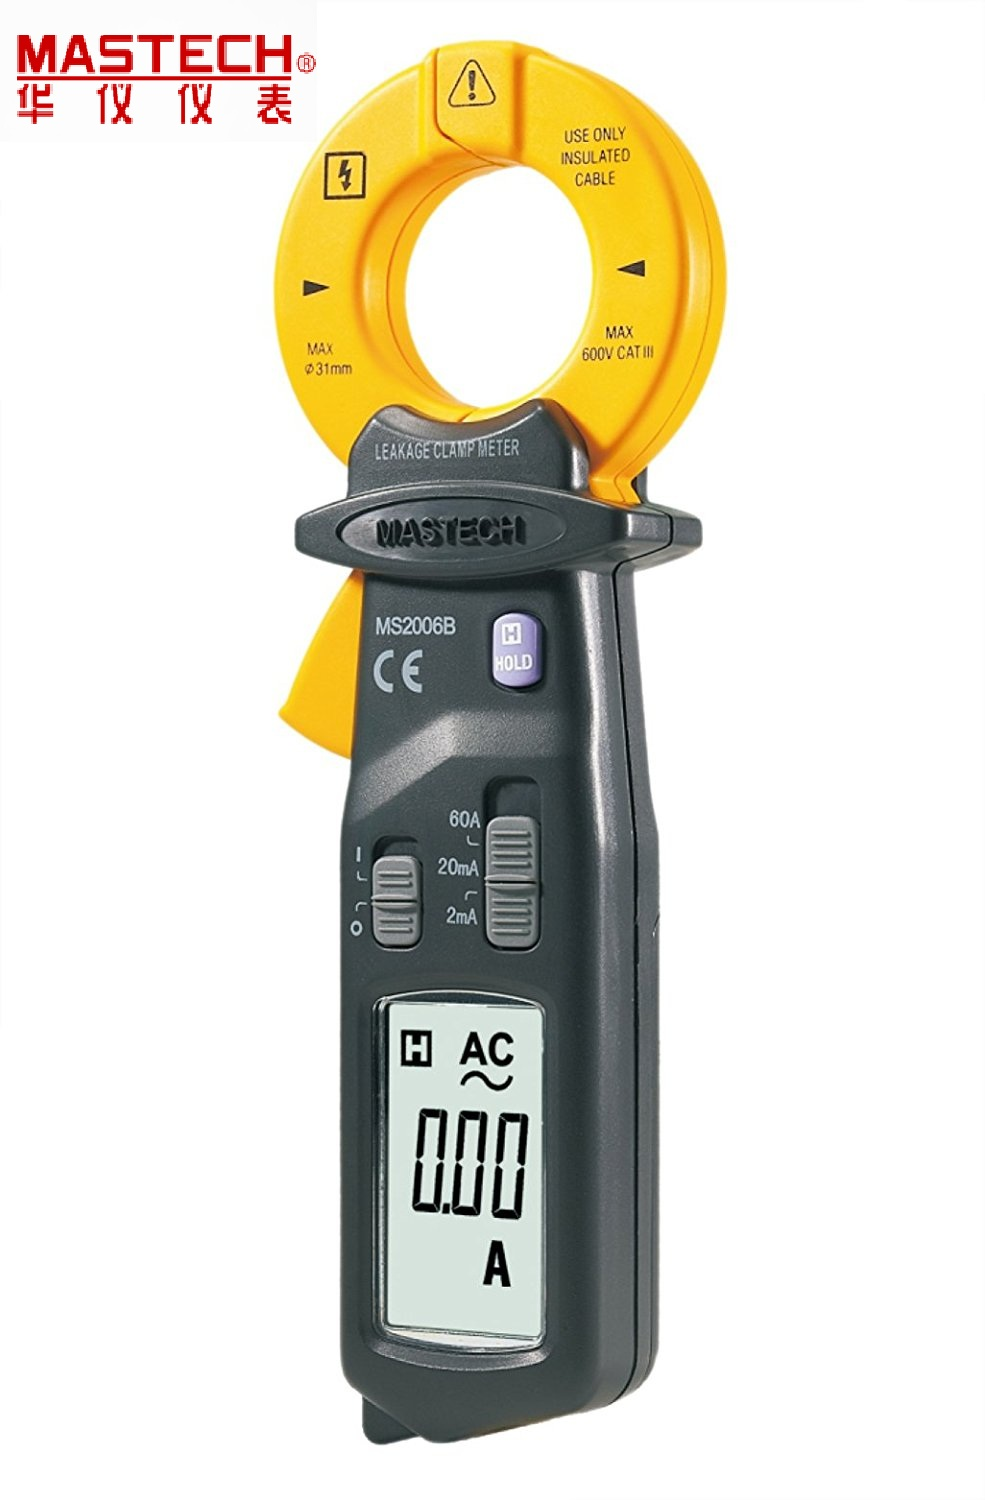 Digital Current Meter : Brand new mastech ms b digital clamp meters ac current